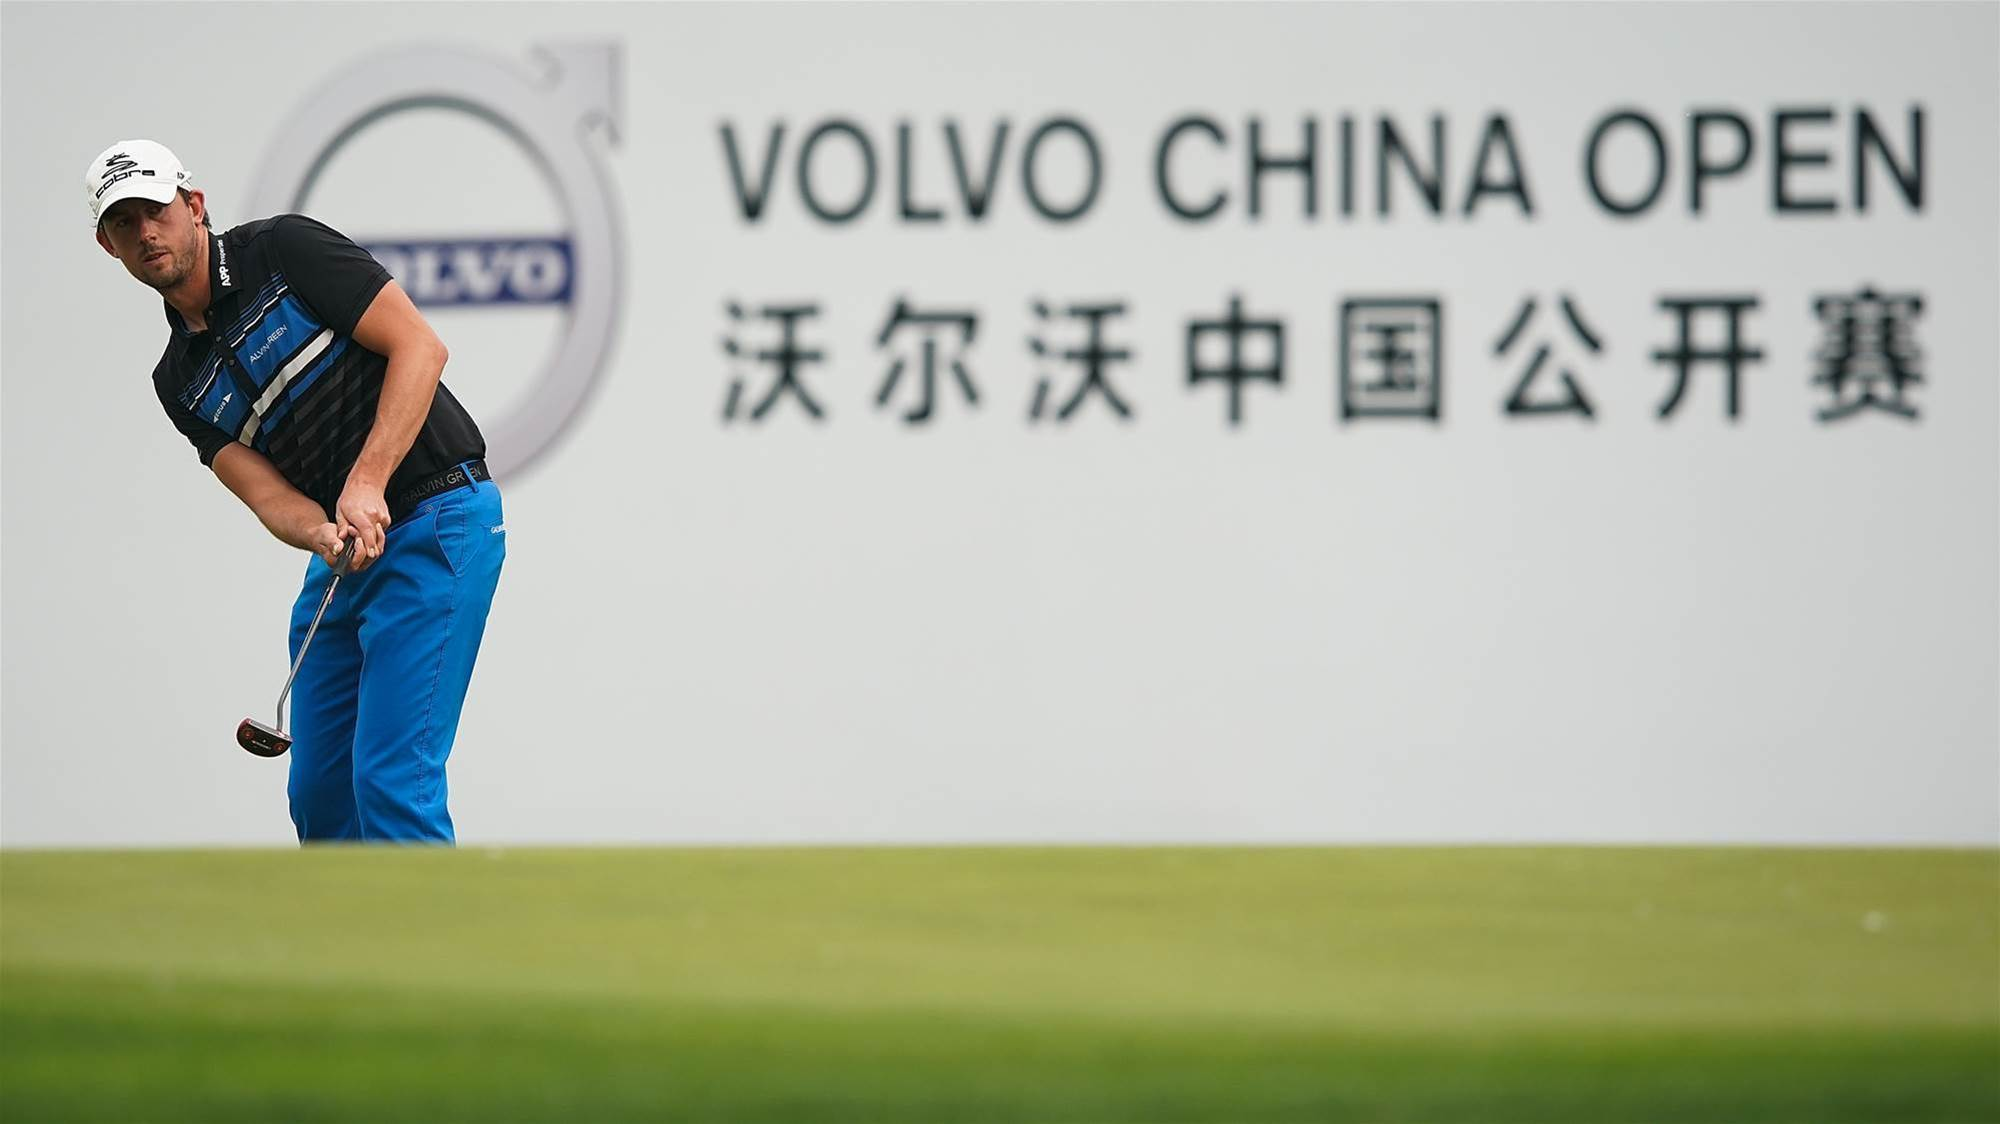 European & Asian Tours sanction China Open